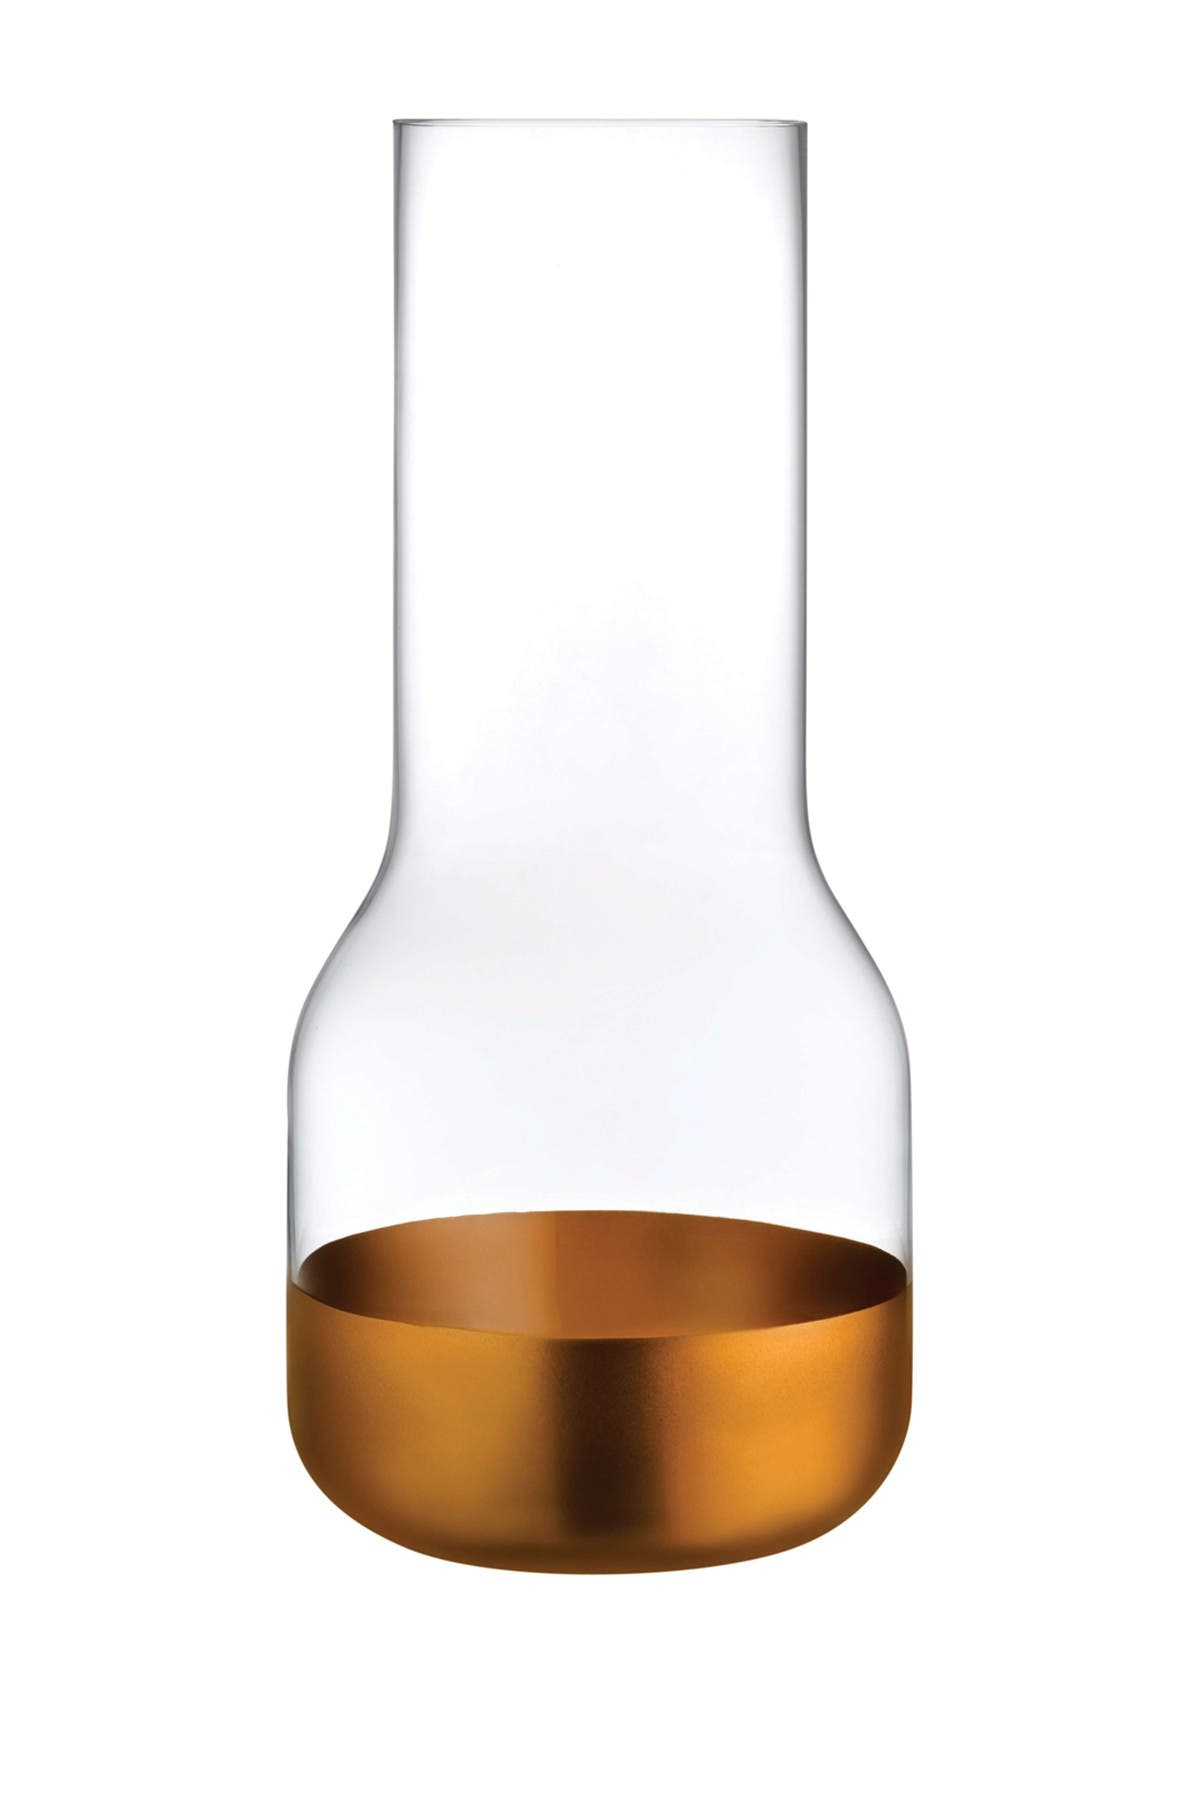 Image of Nude Glass Contour Vase - Tall with Clear Top and Copper Base